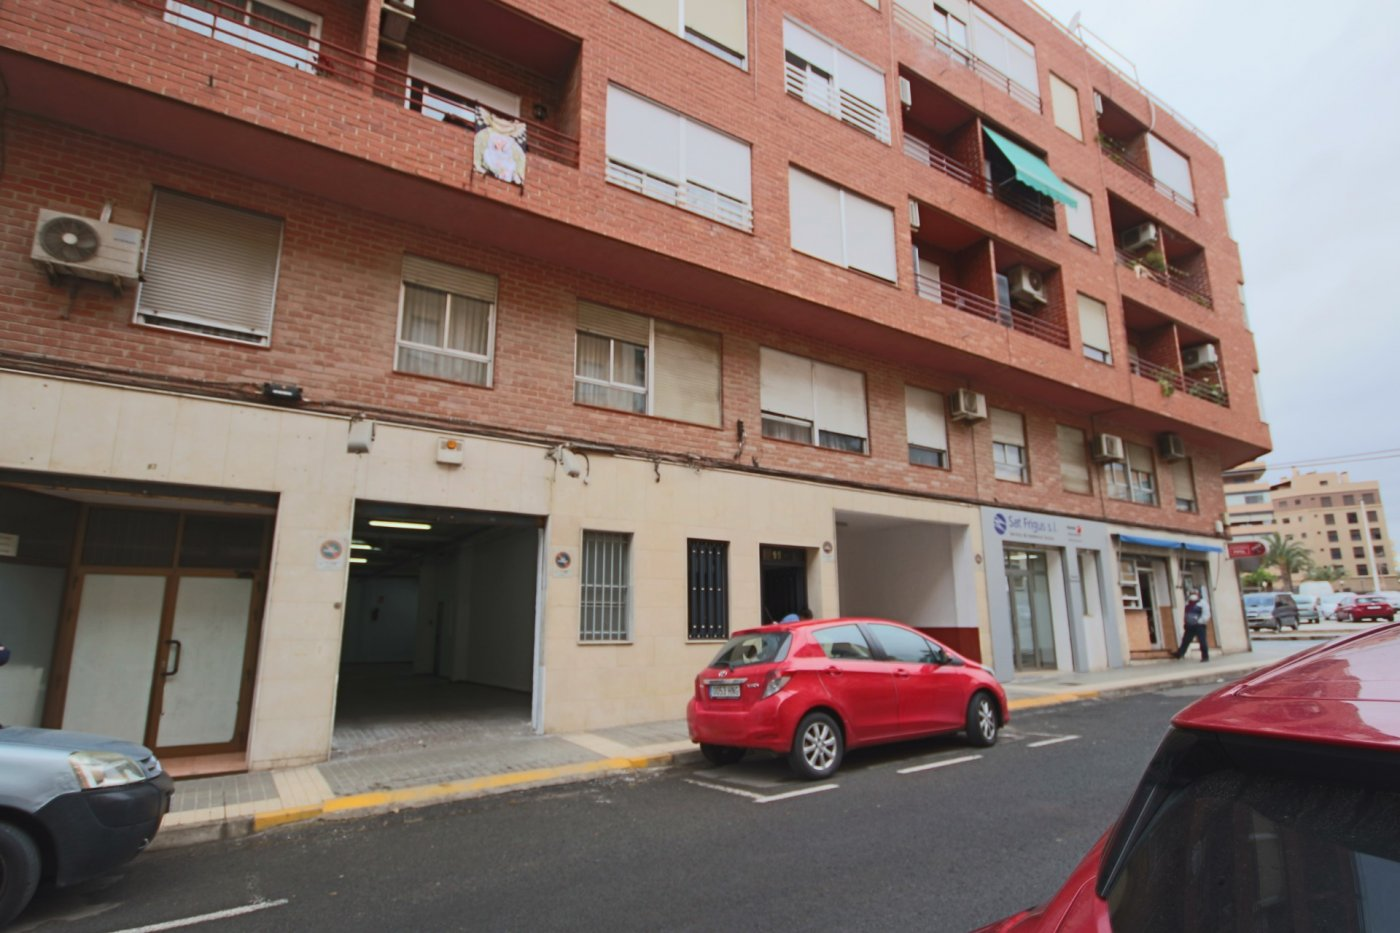 Local Vender elche toscar Ref.:08590-mls